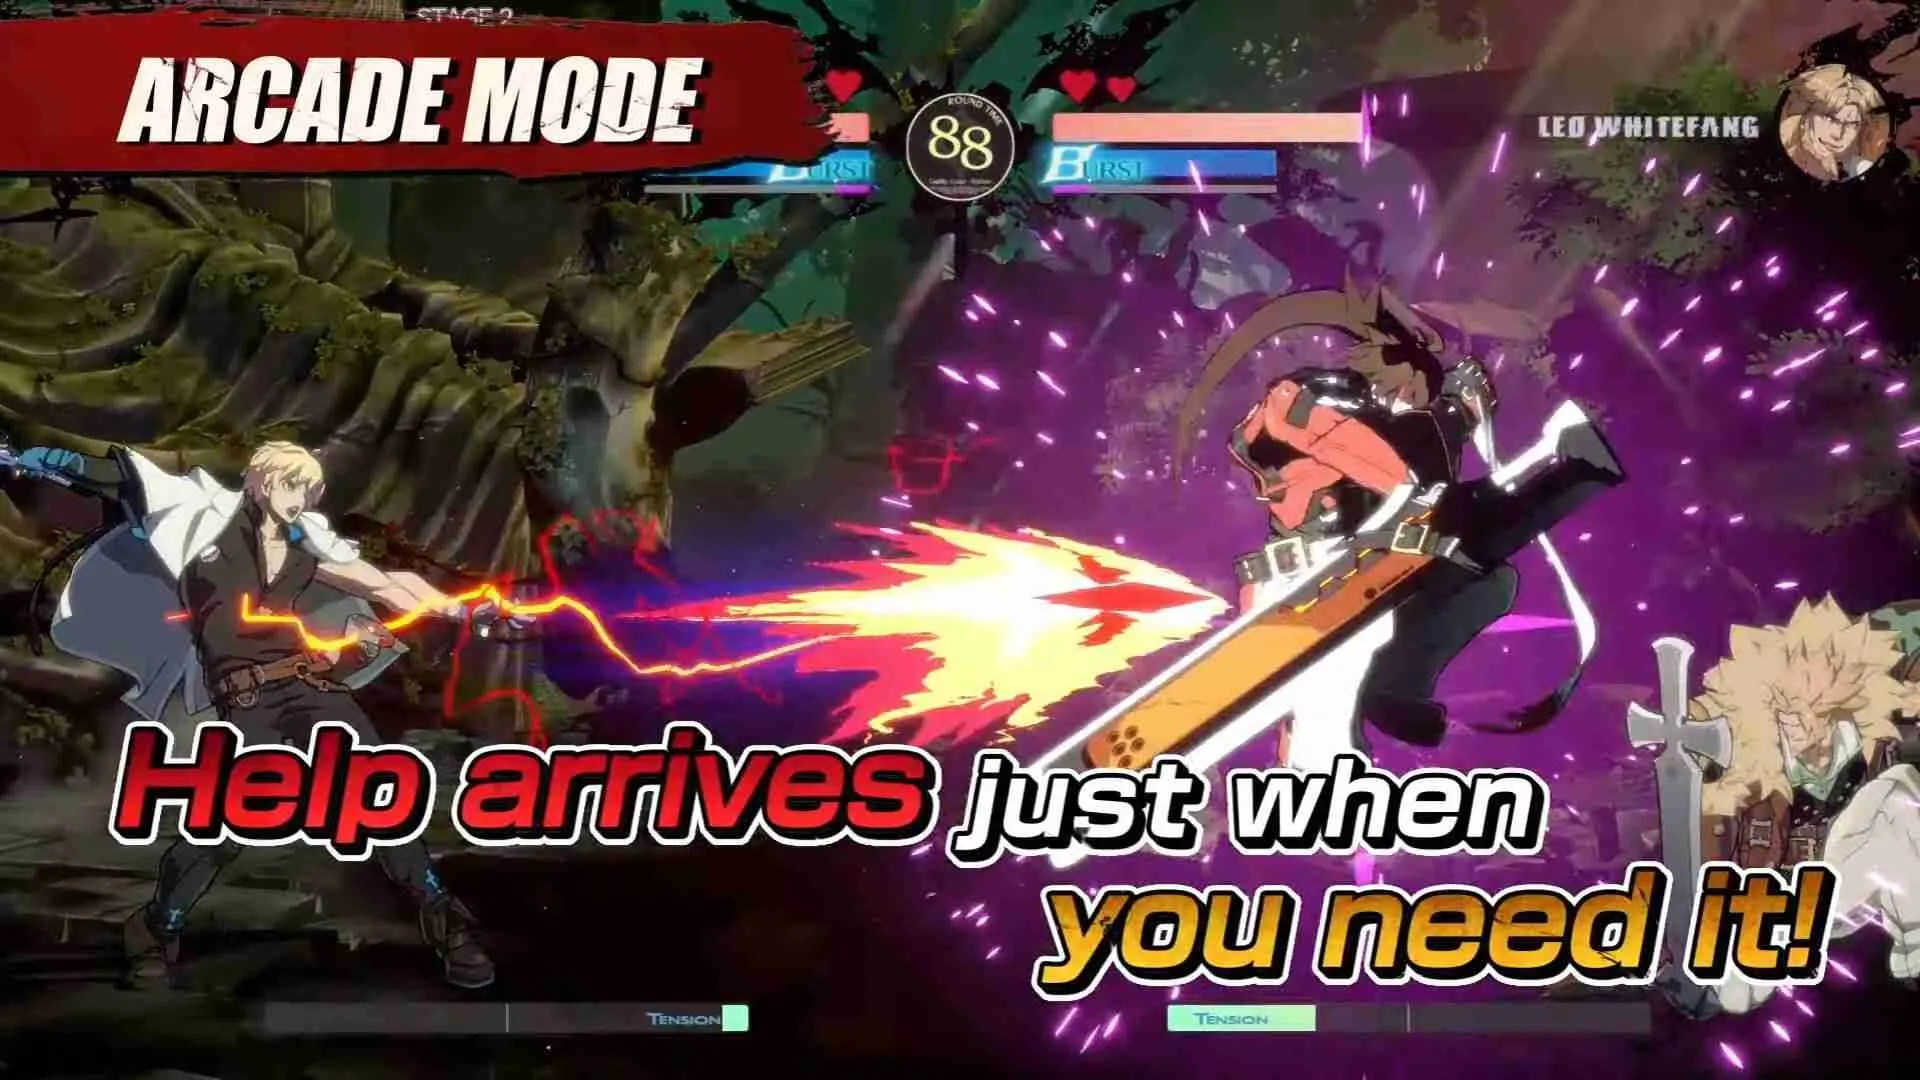 image of arcade mode guilty gear strive